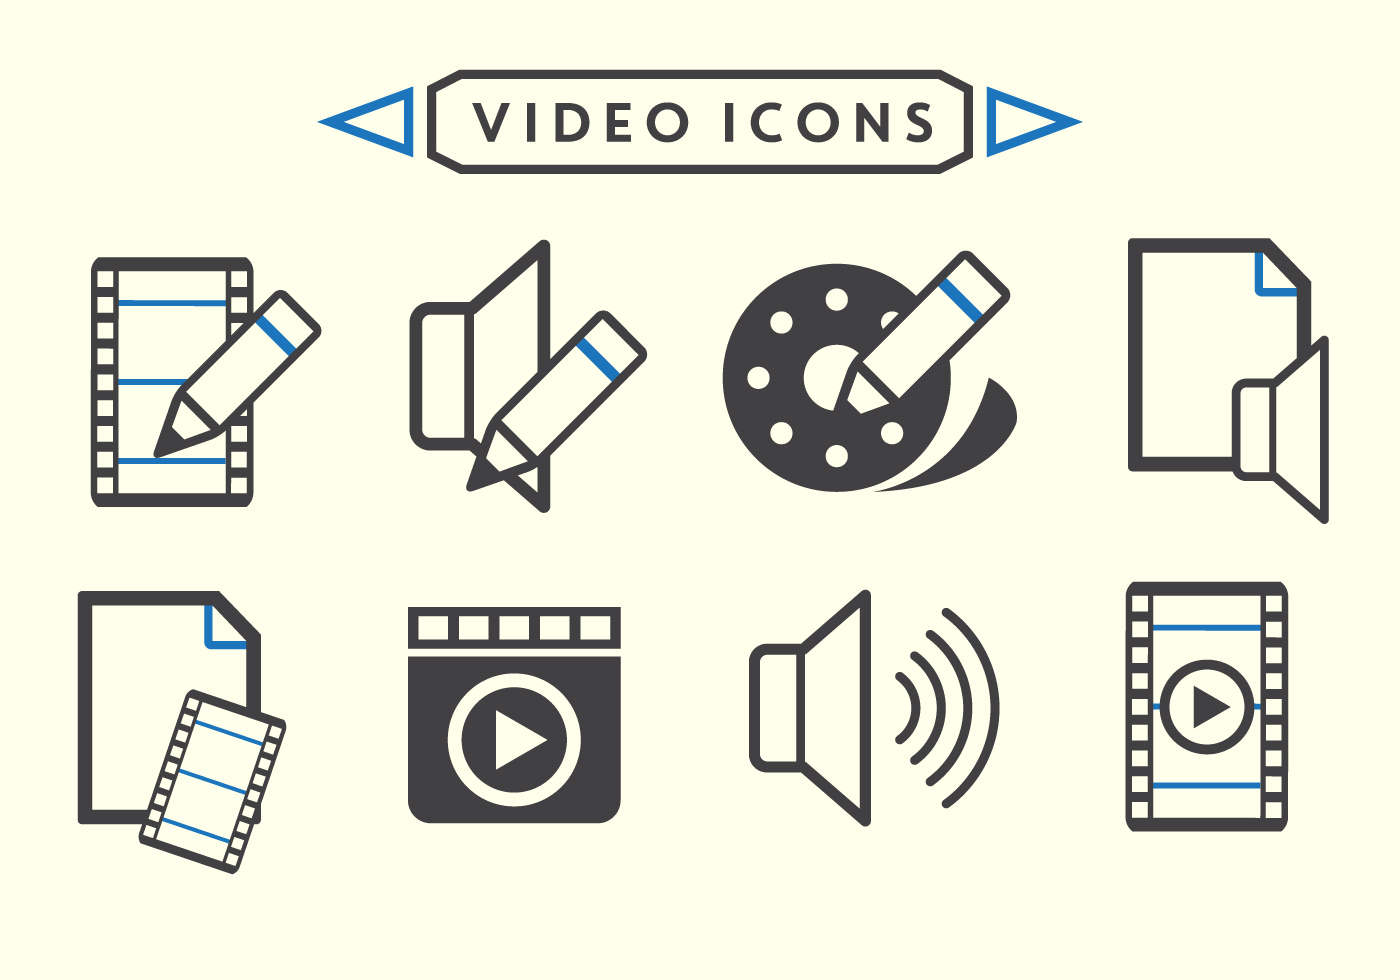 Video Editing Vectors Download Free Vector Art Stock